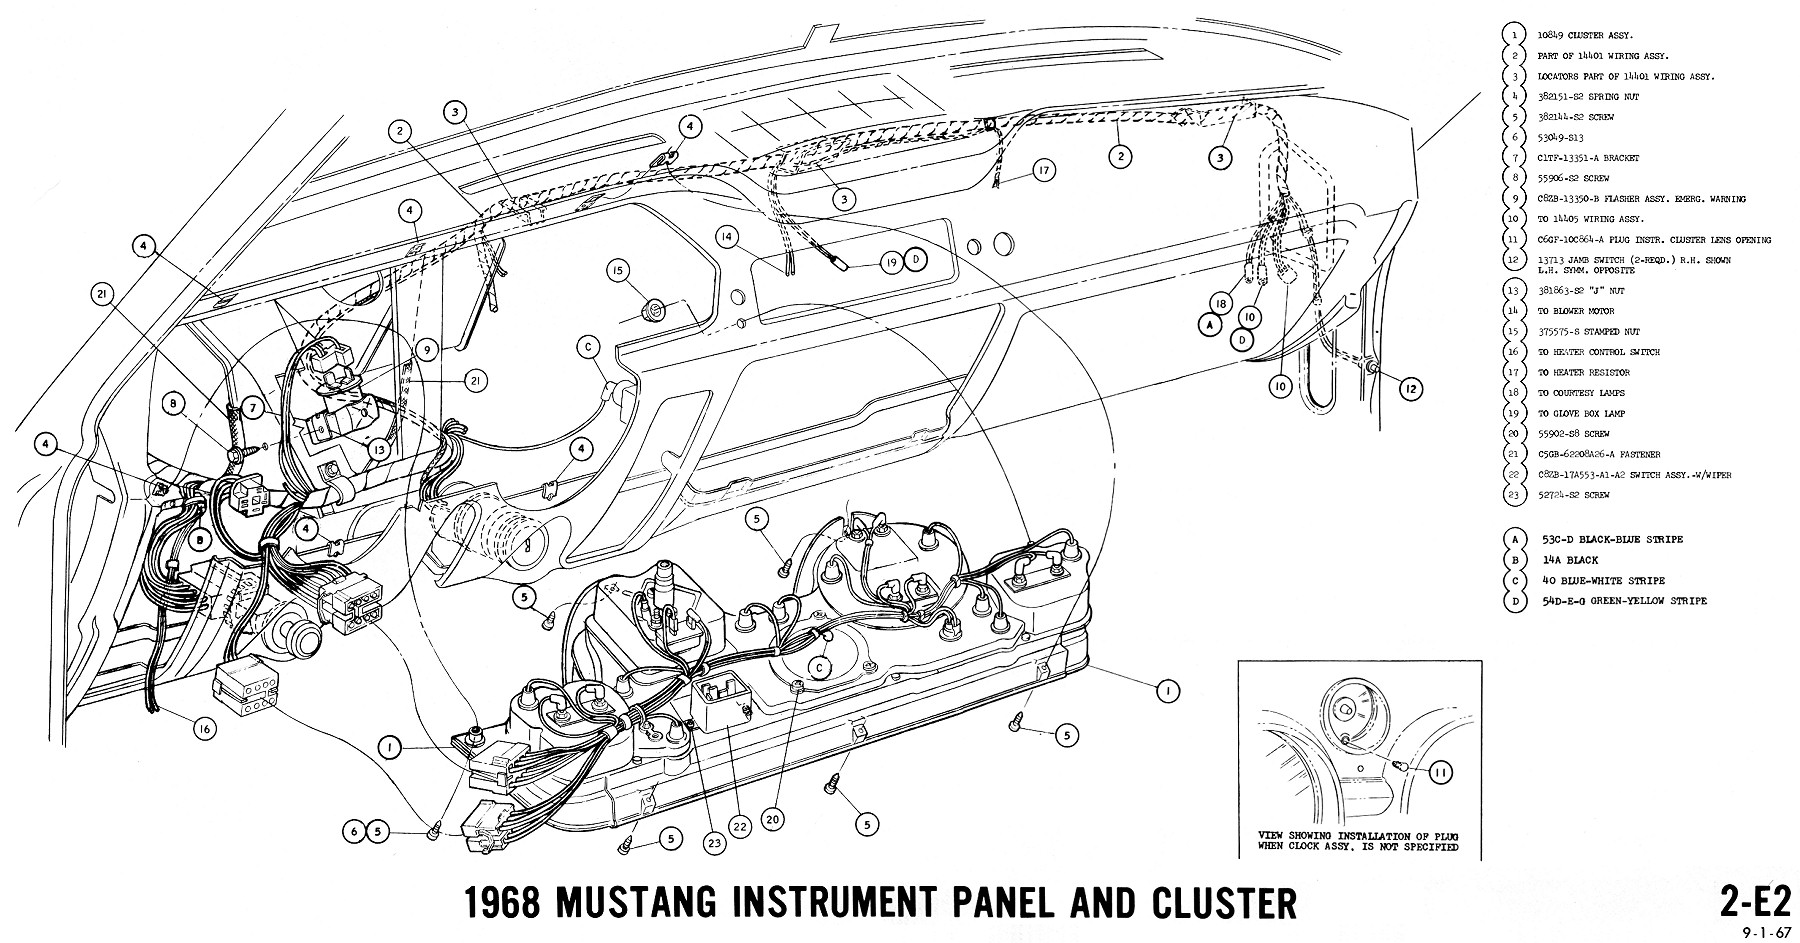 1965 Chevelle Wiring Diagram from www.peterfranza.com